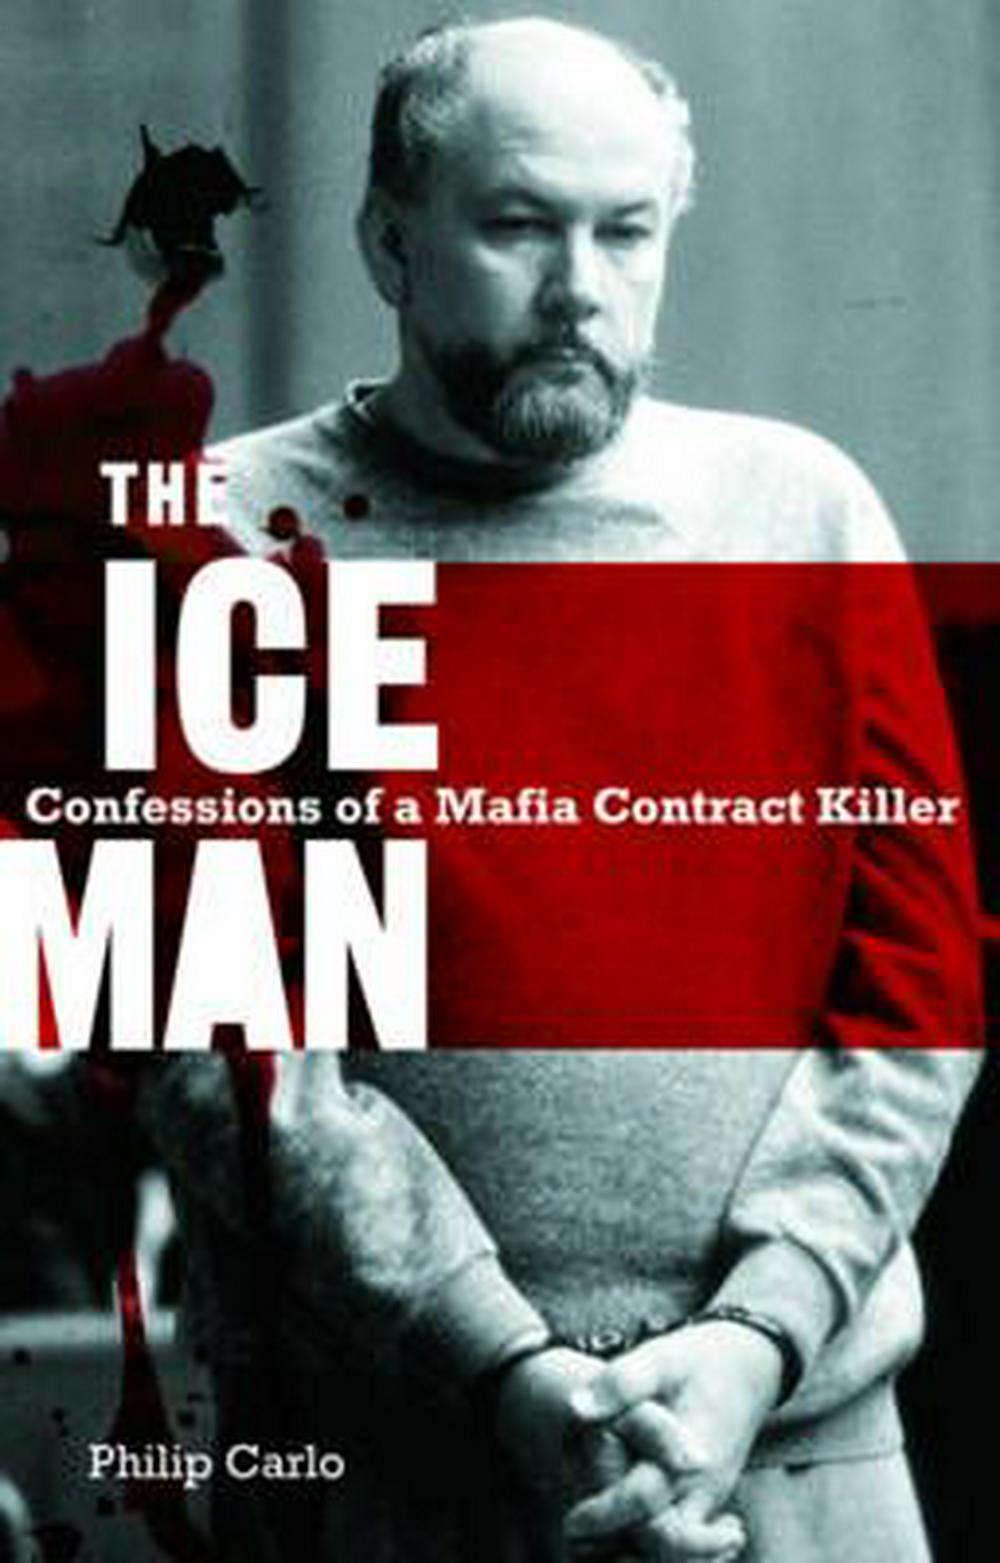 The Ice Man by Philip Carlo, ISBN: 9780732284961